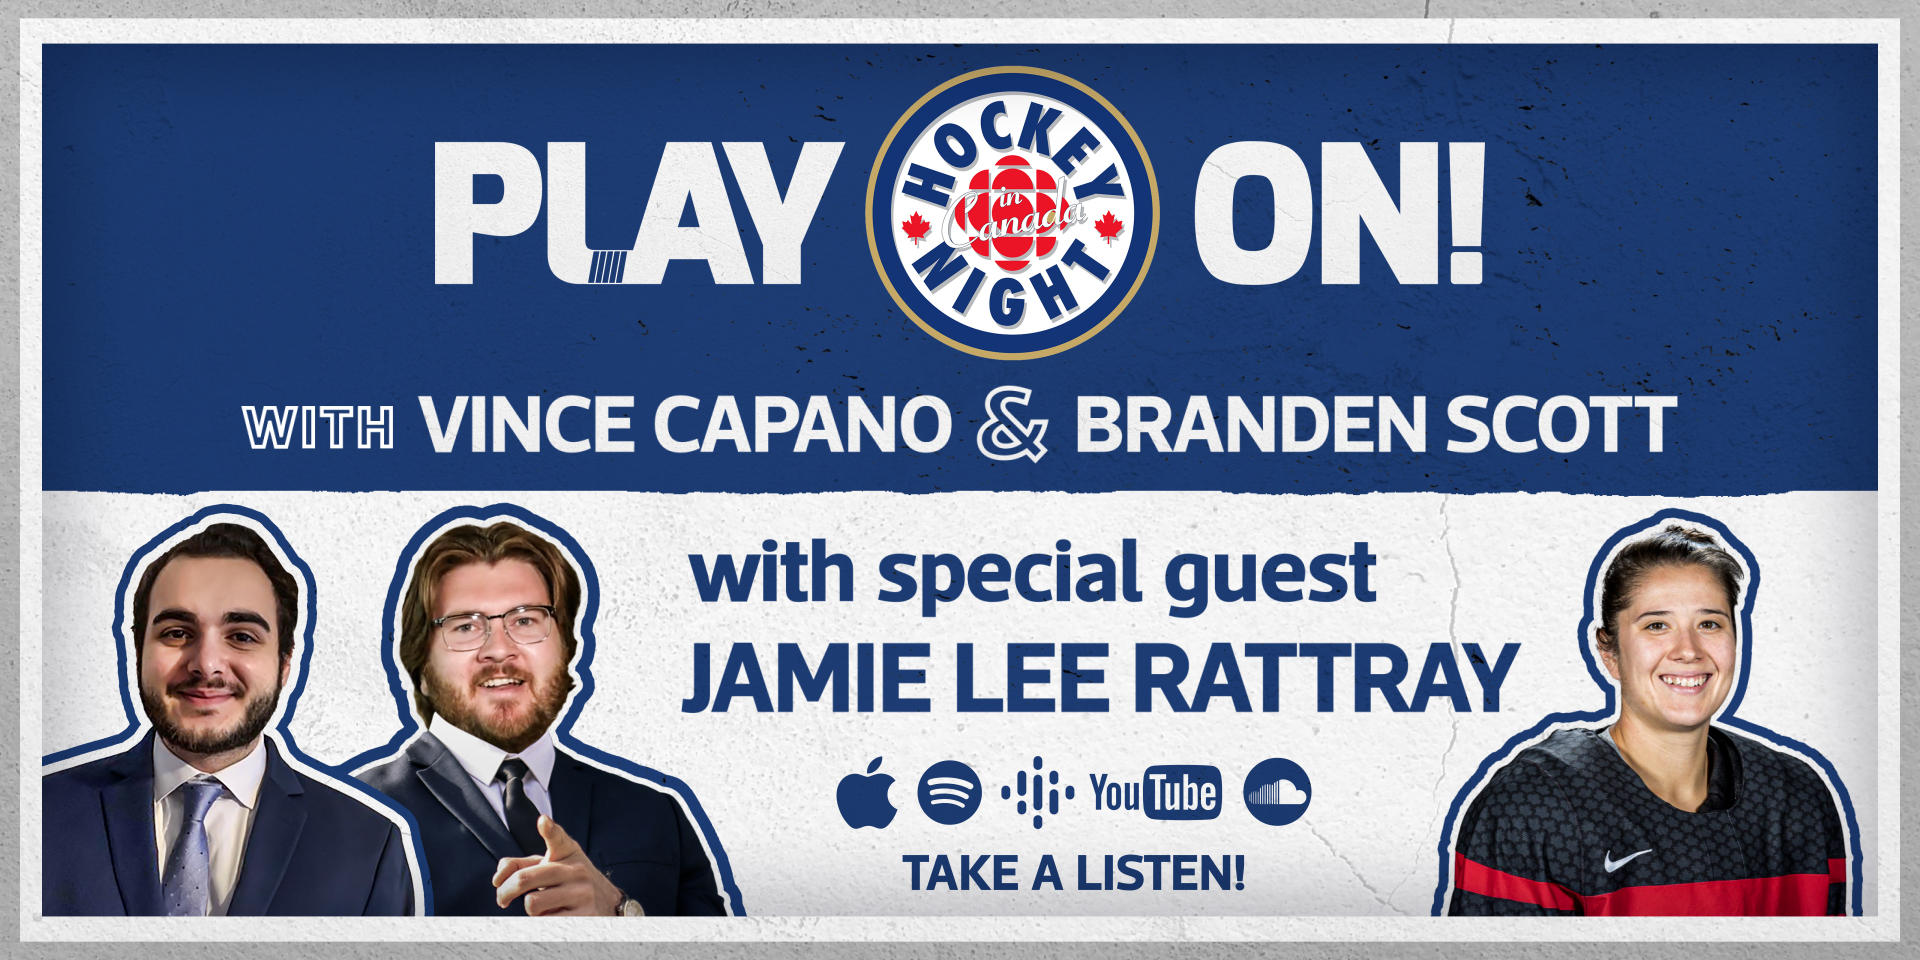 Promotional Graphic for the Play On! Podcast featuring Jamie Lee Rattray